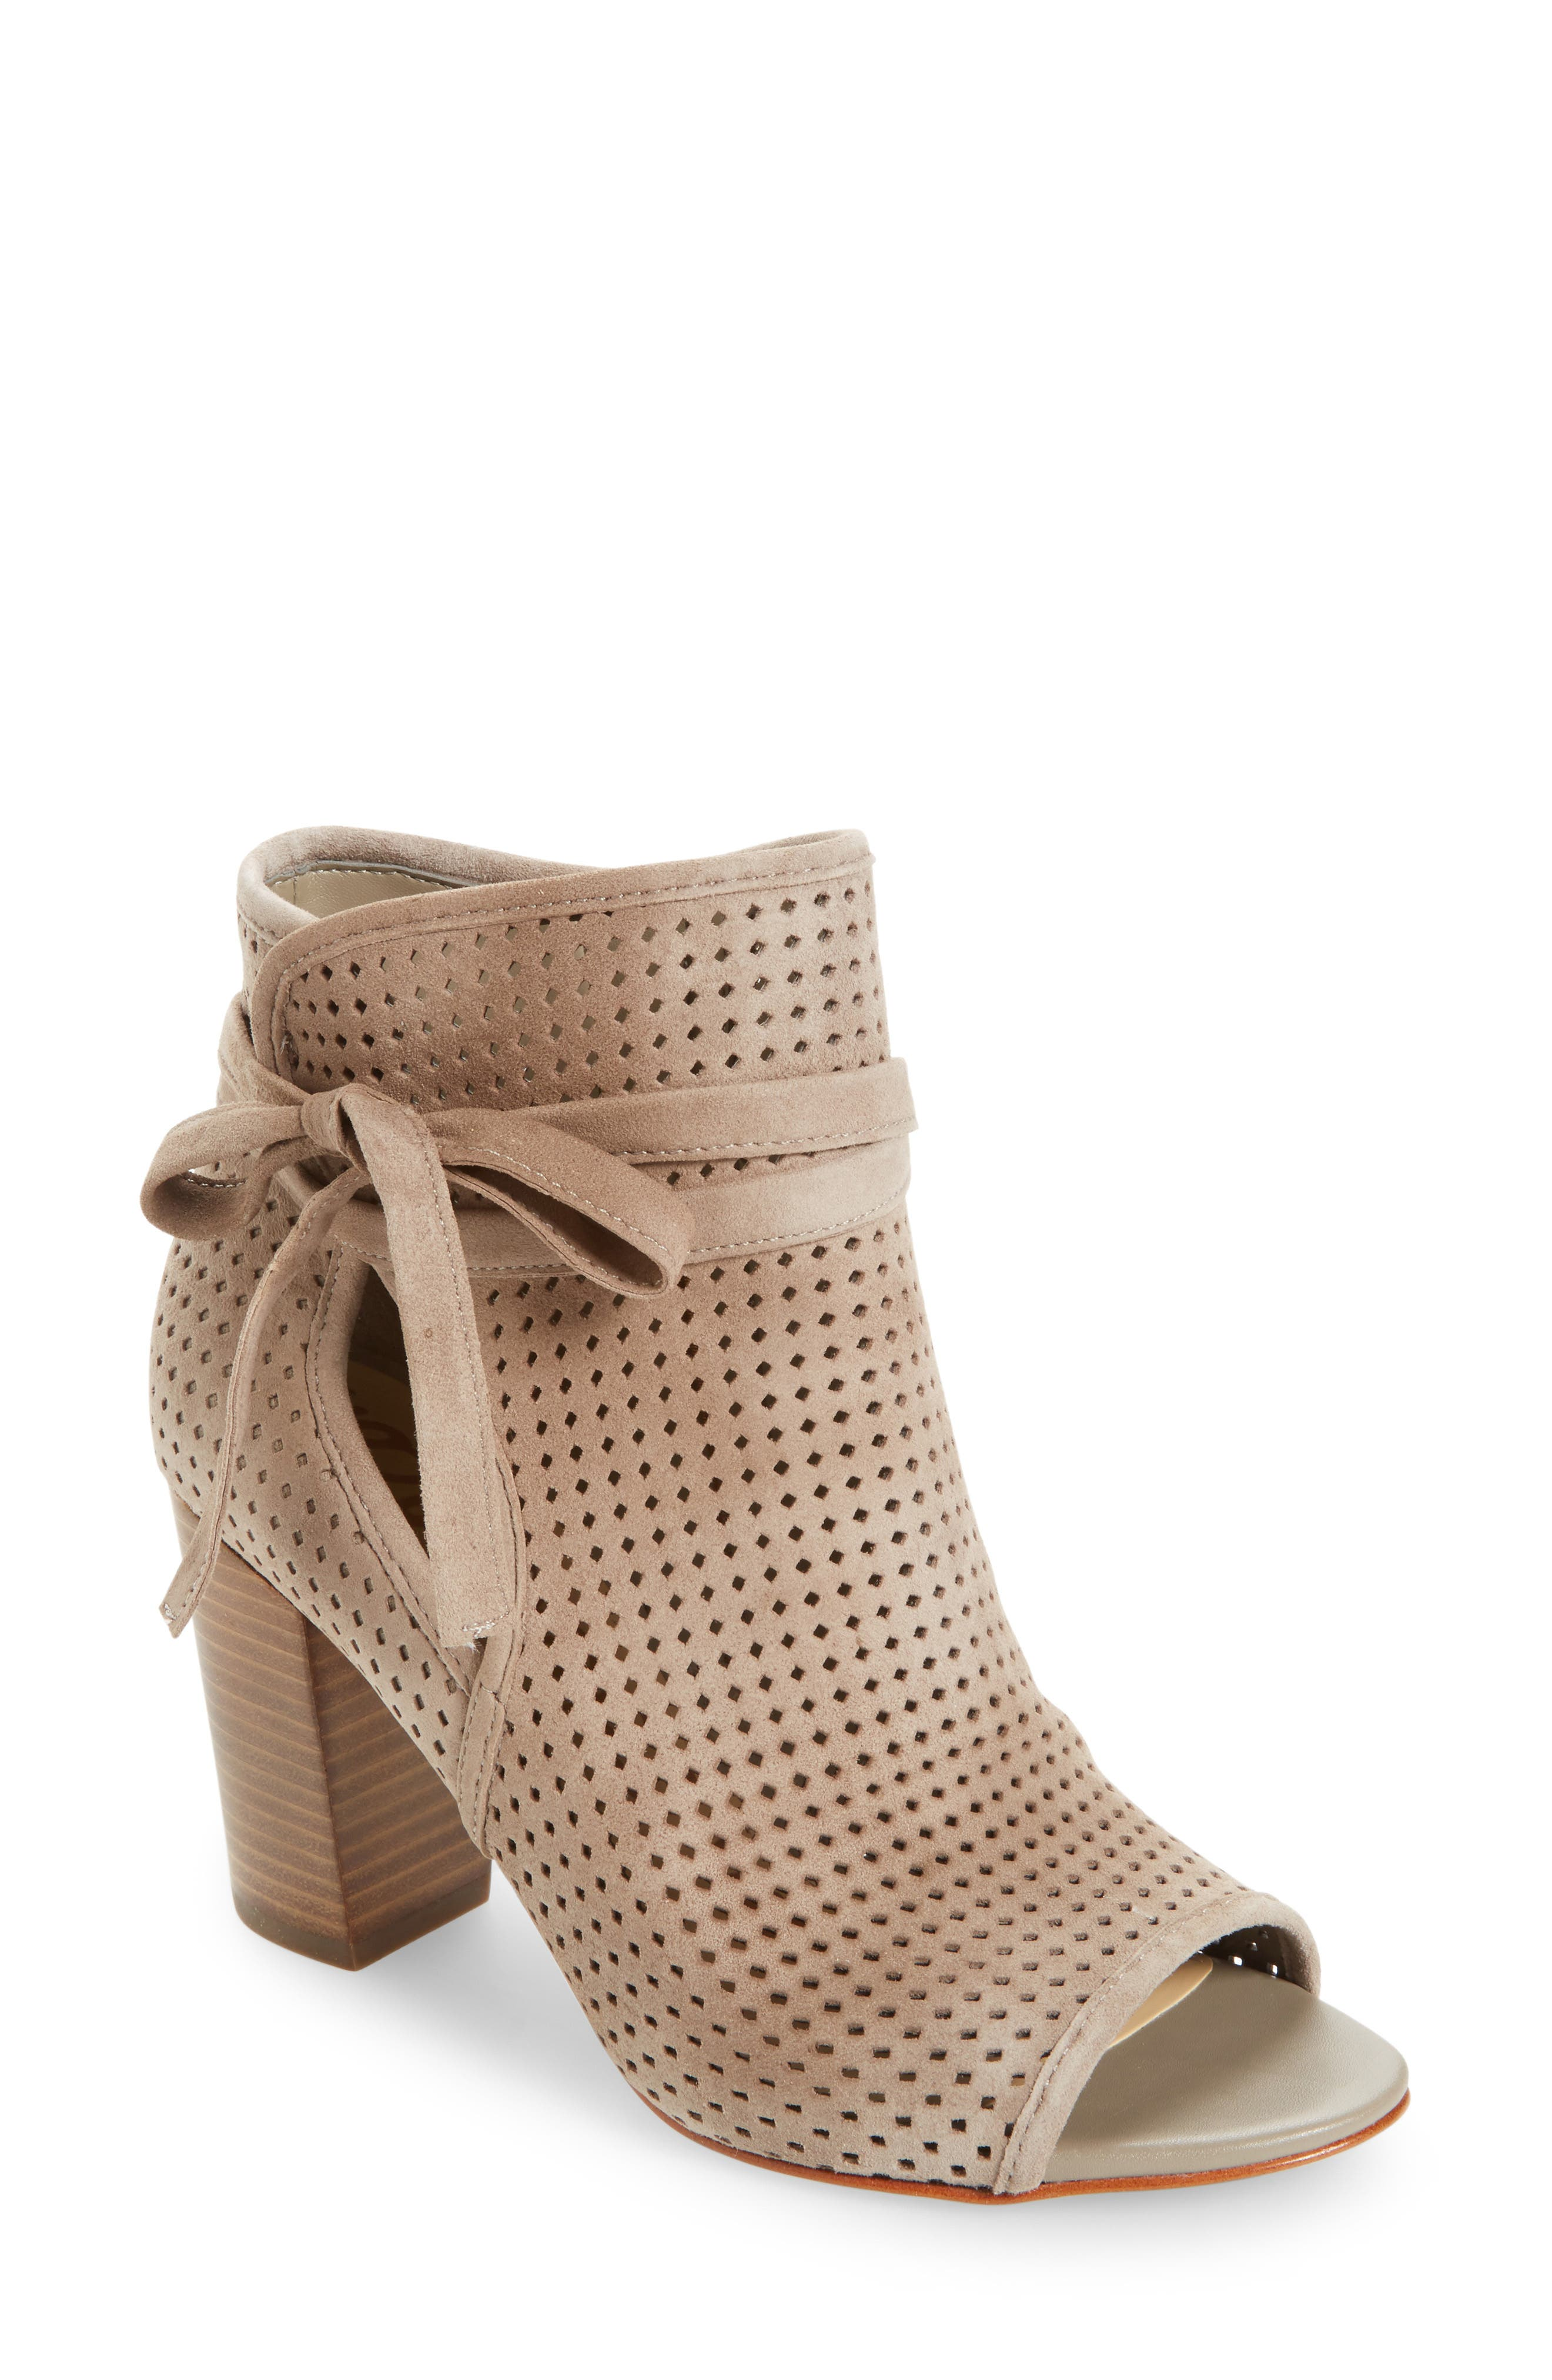 Main Image - Sam Edelman Ellery Open Toe Bootie (Women)